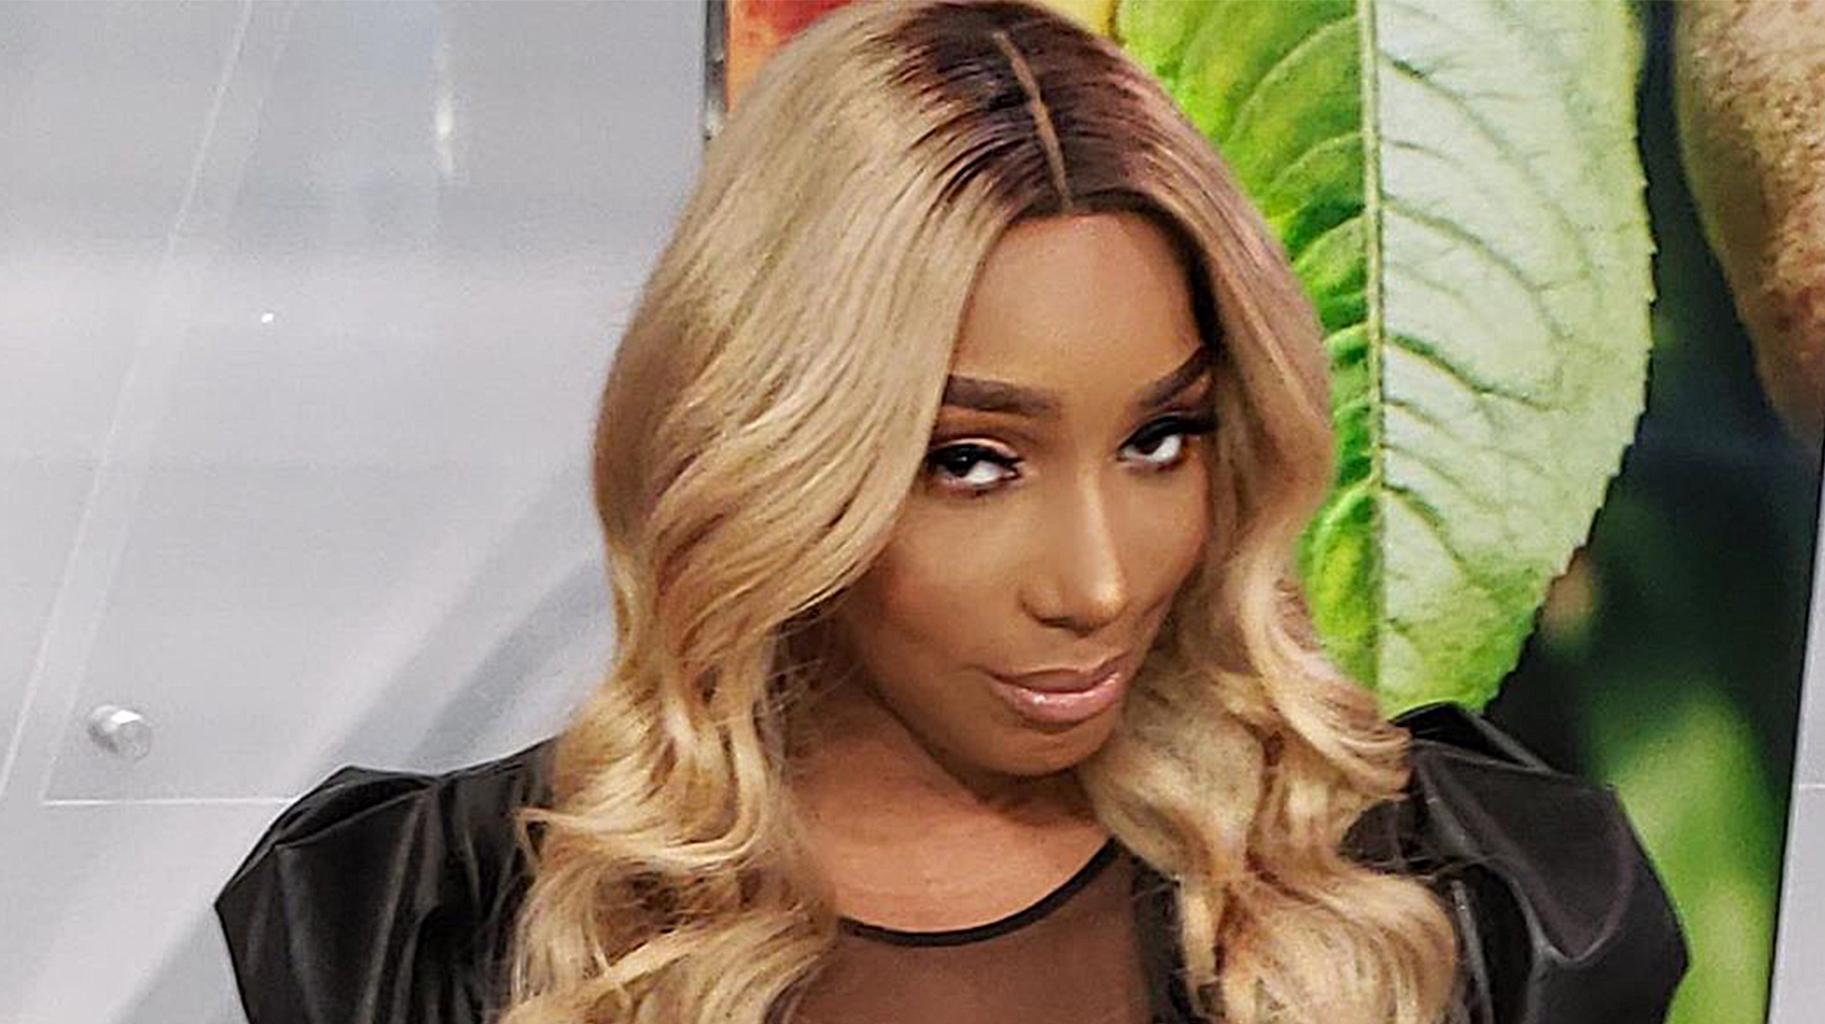 NeNe Leakes Shows Off A New Look During Her Video With Lamar Odom And Sabrina Parr And Some Fans Hate It!